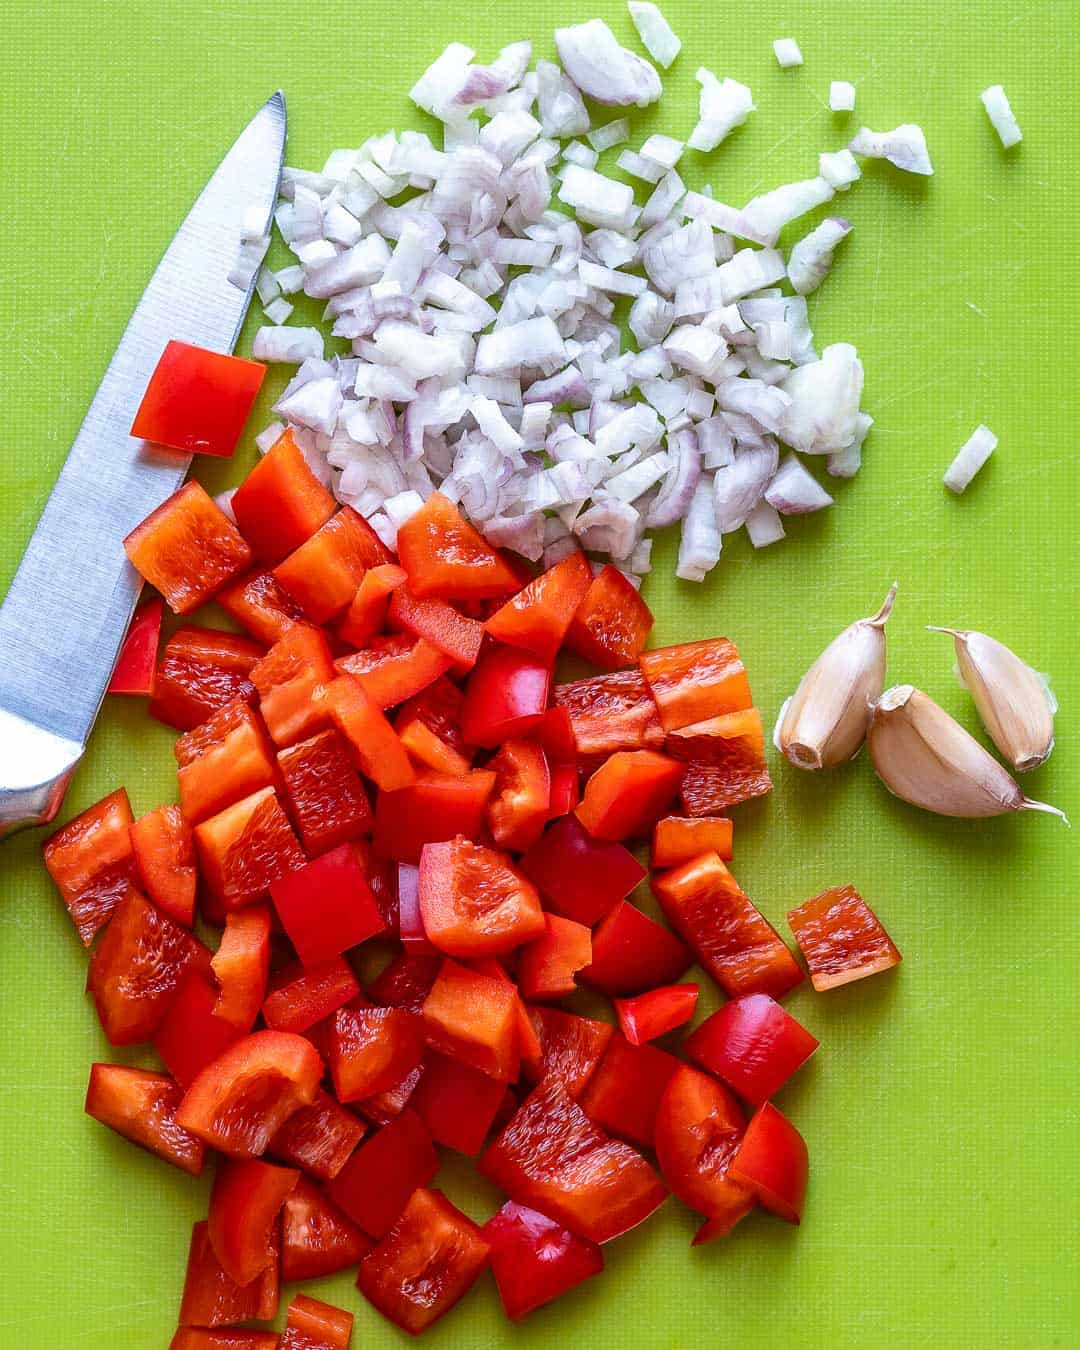 Chopped shallots and bell pepper on cutting board